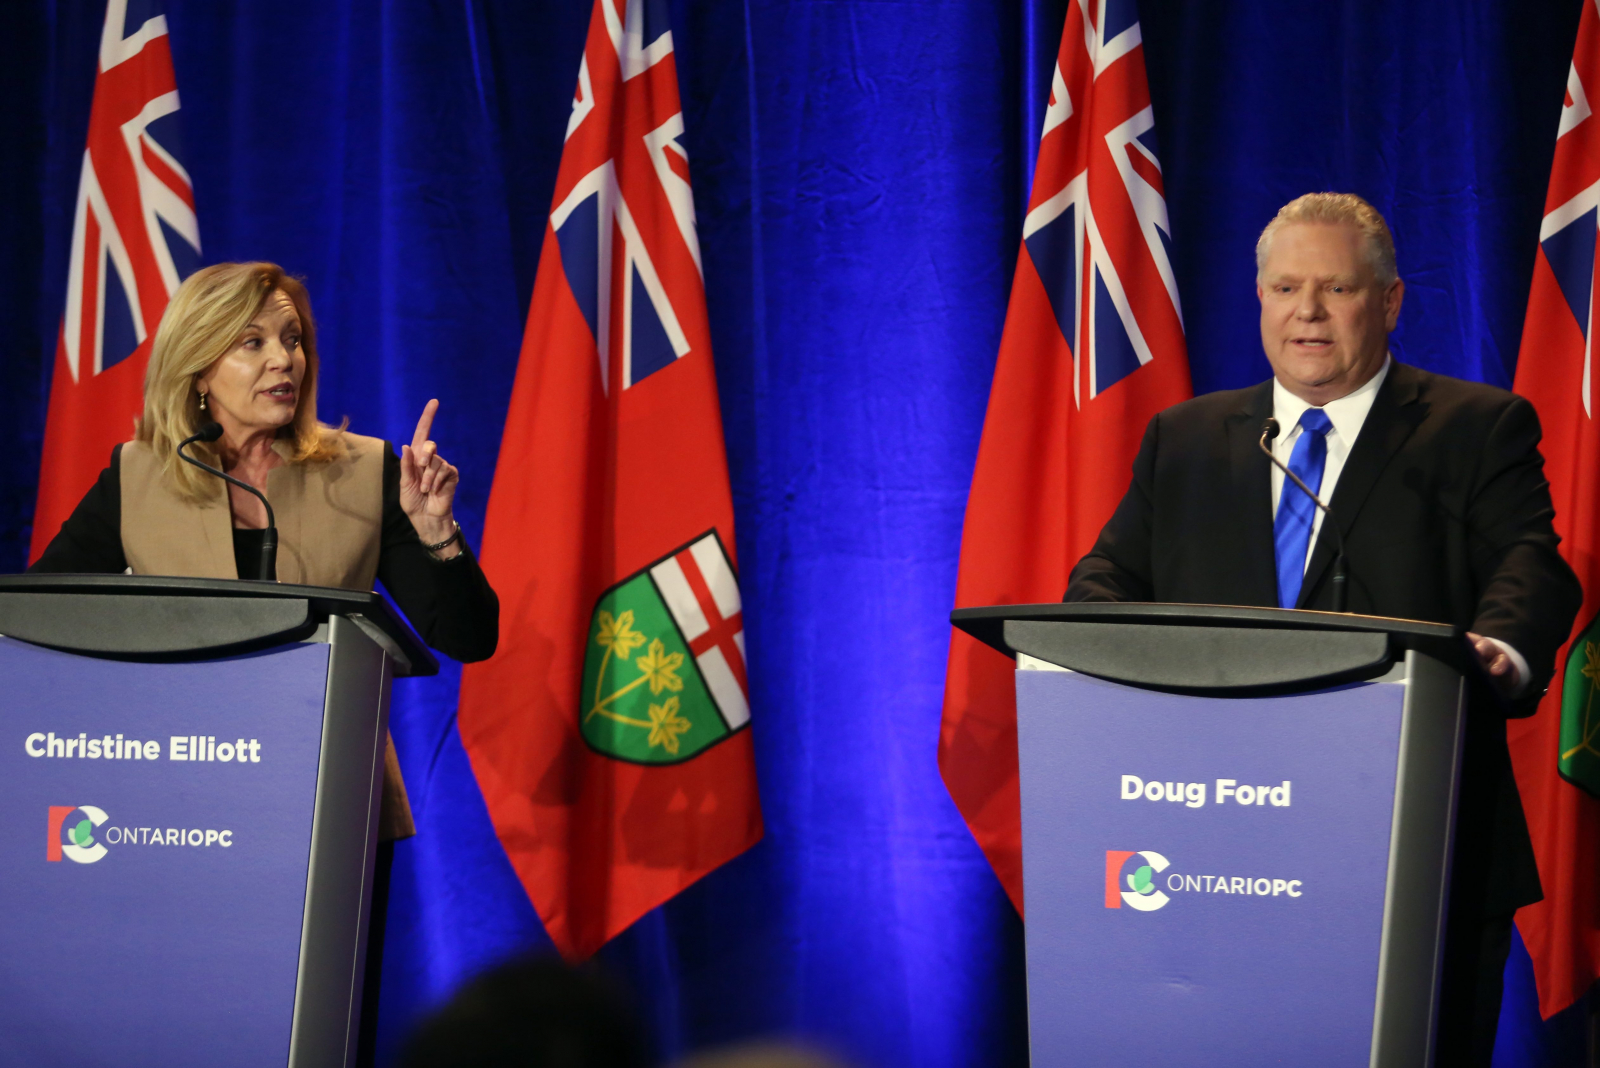 Christine Elliott, Doug Ford, Ontario, Progressive Conservative, debate, Ottawa